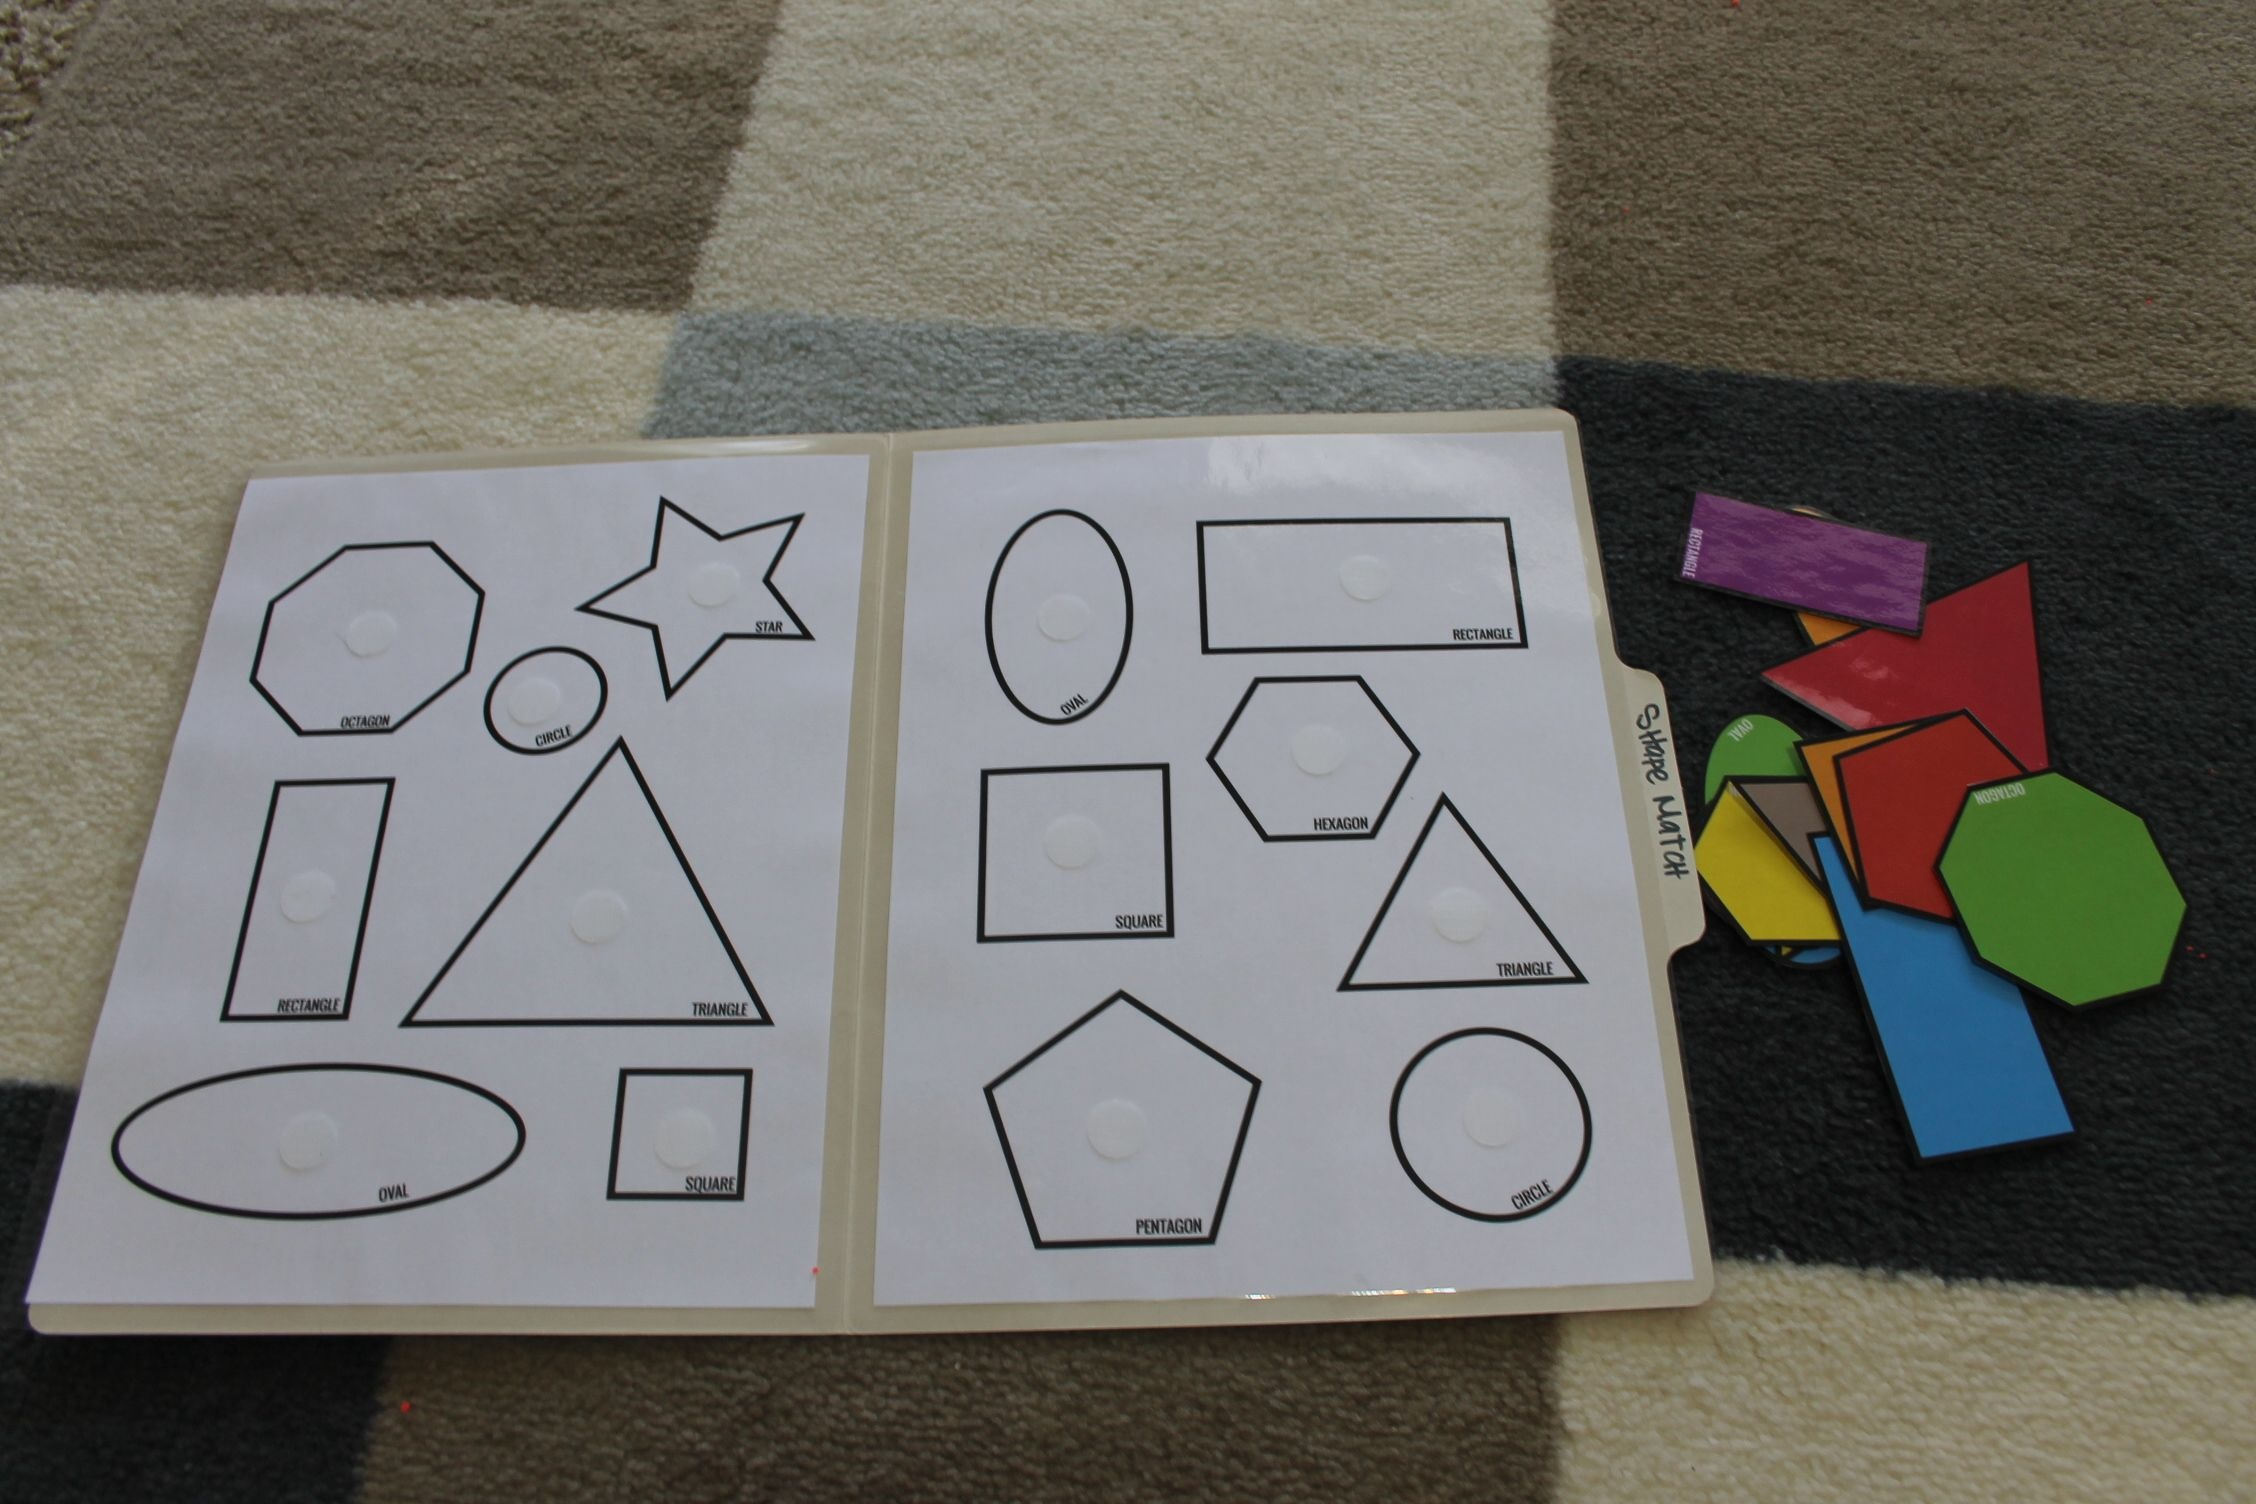 Folder Games For Preschoolers With Numbers - Google Search | File - File Folder Games For Toddlers Free Printable